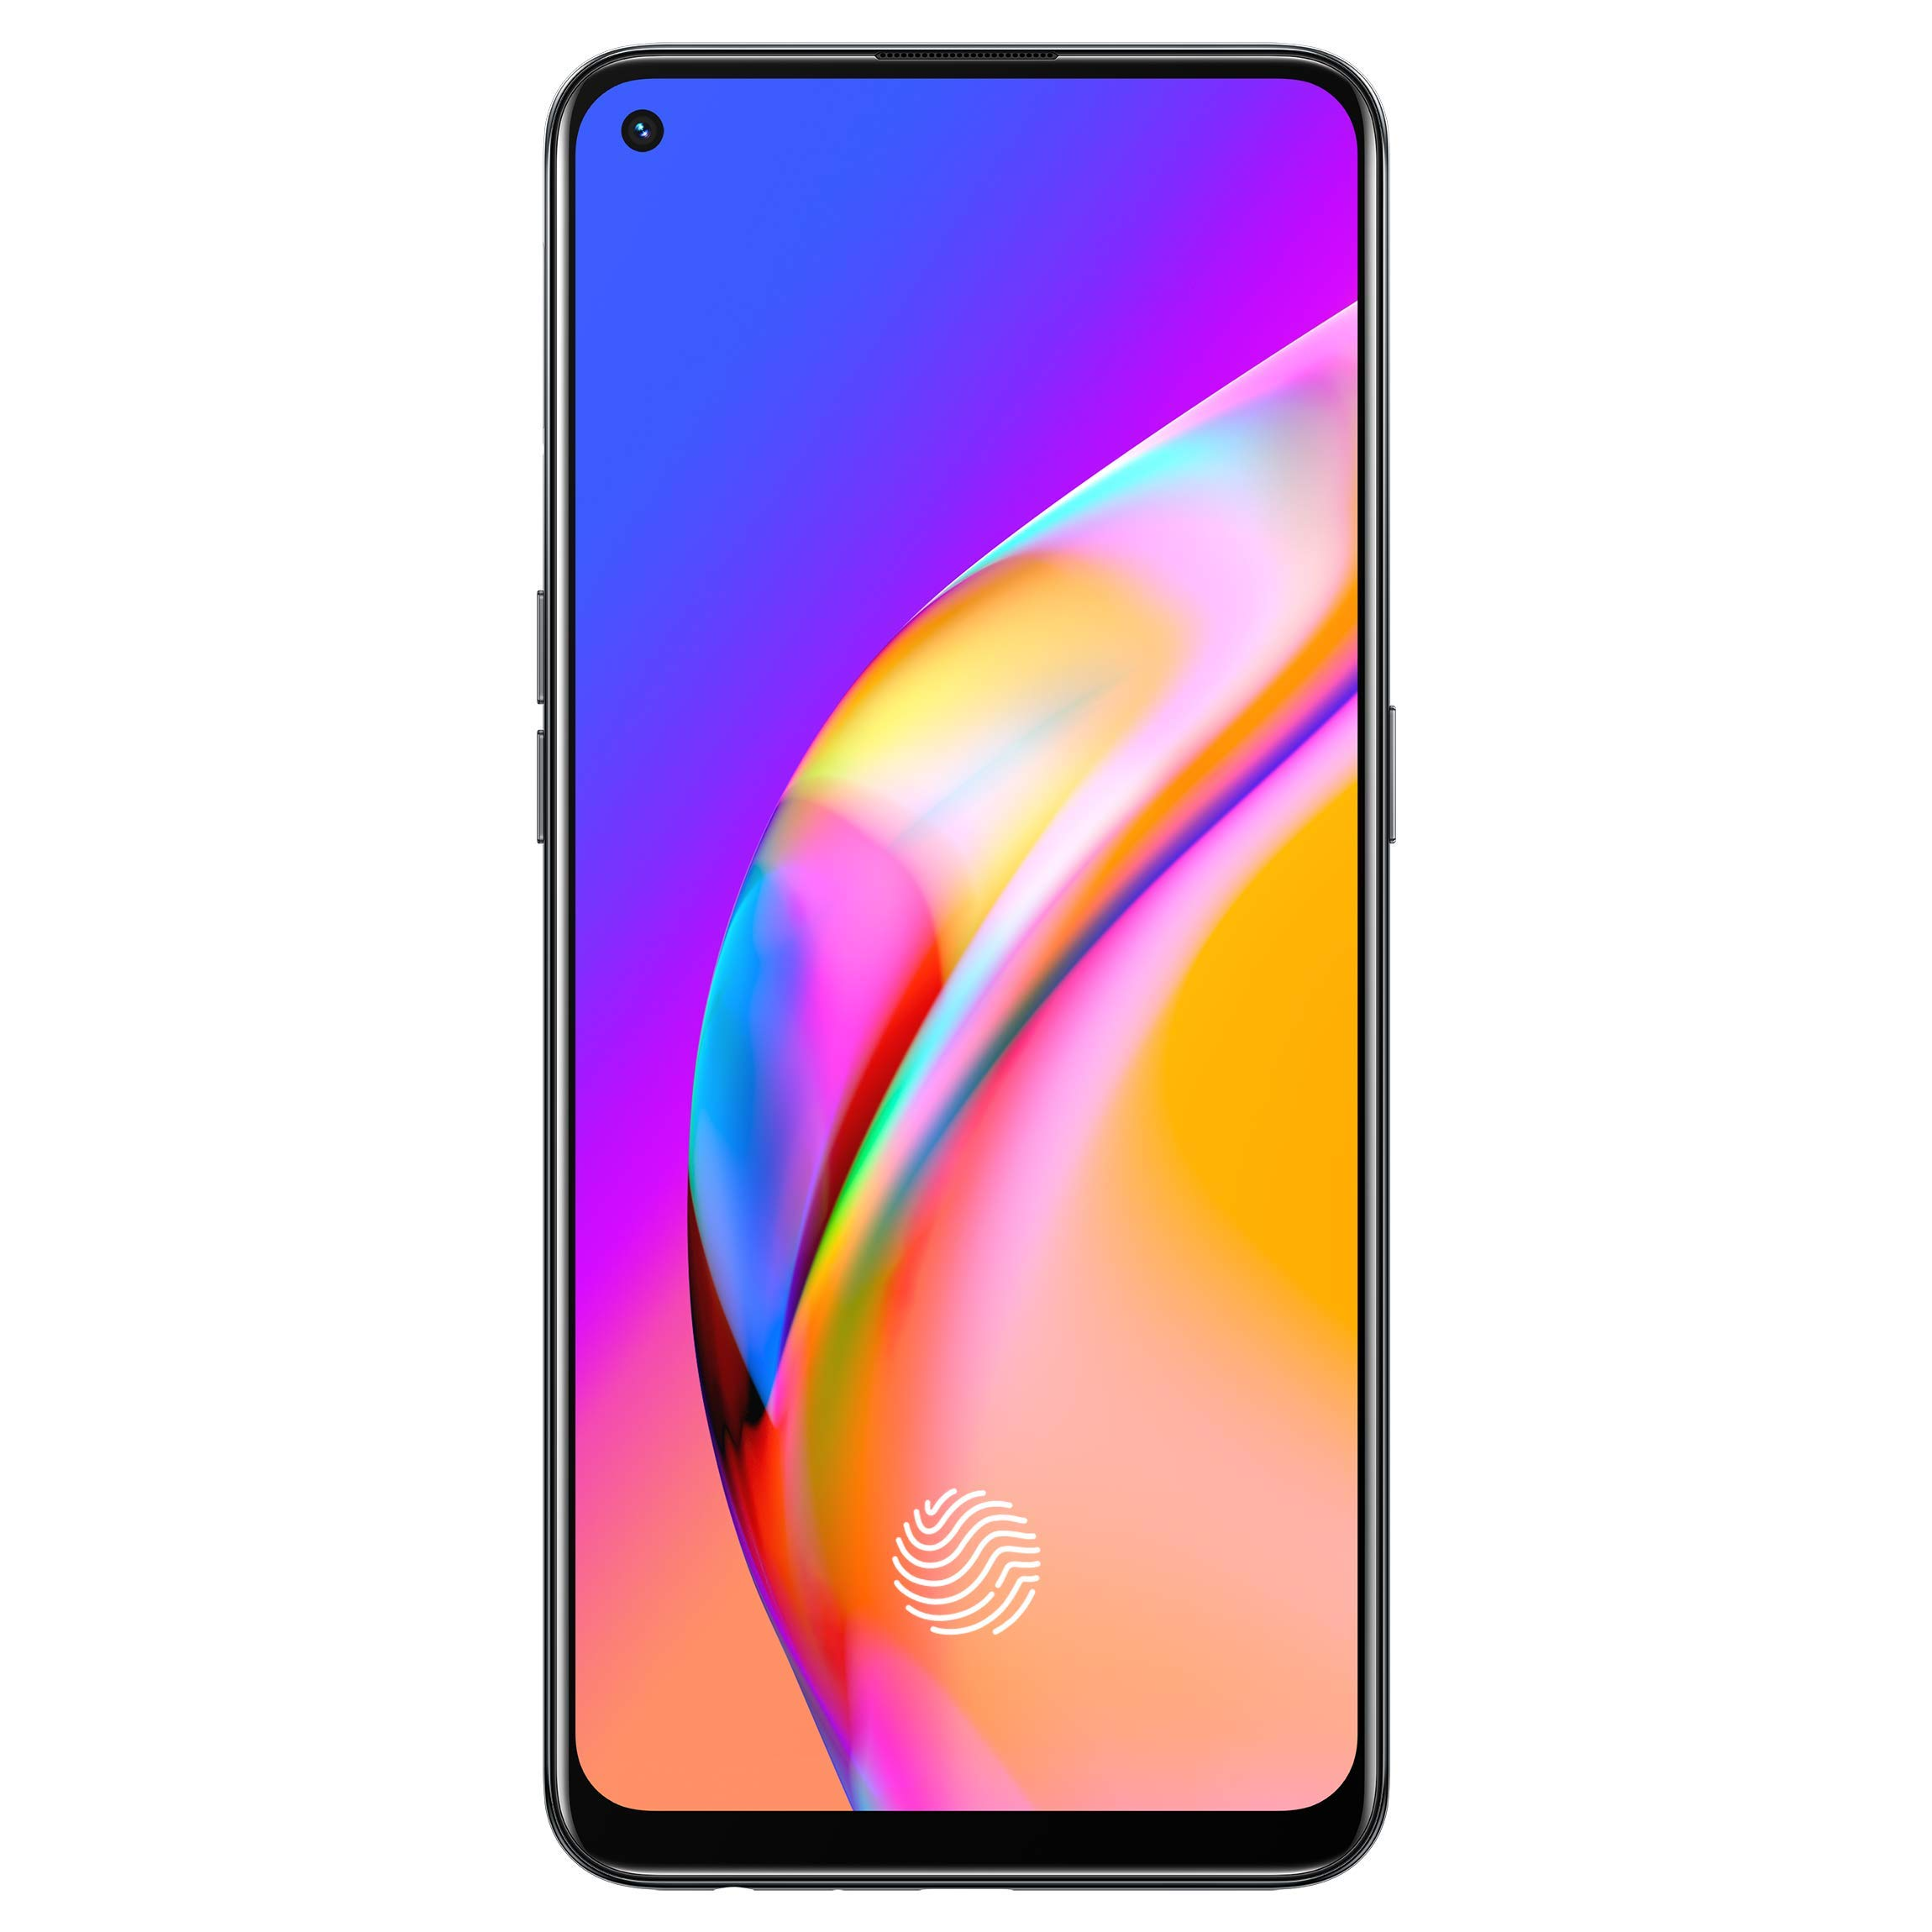 OPPO F19 Pro (Fluid Black, 8GB RAM, 256GB Storage) with No Cost EMI/Additional Exchange Offers